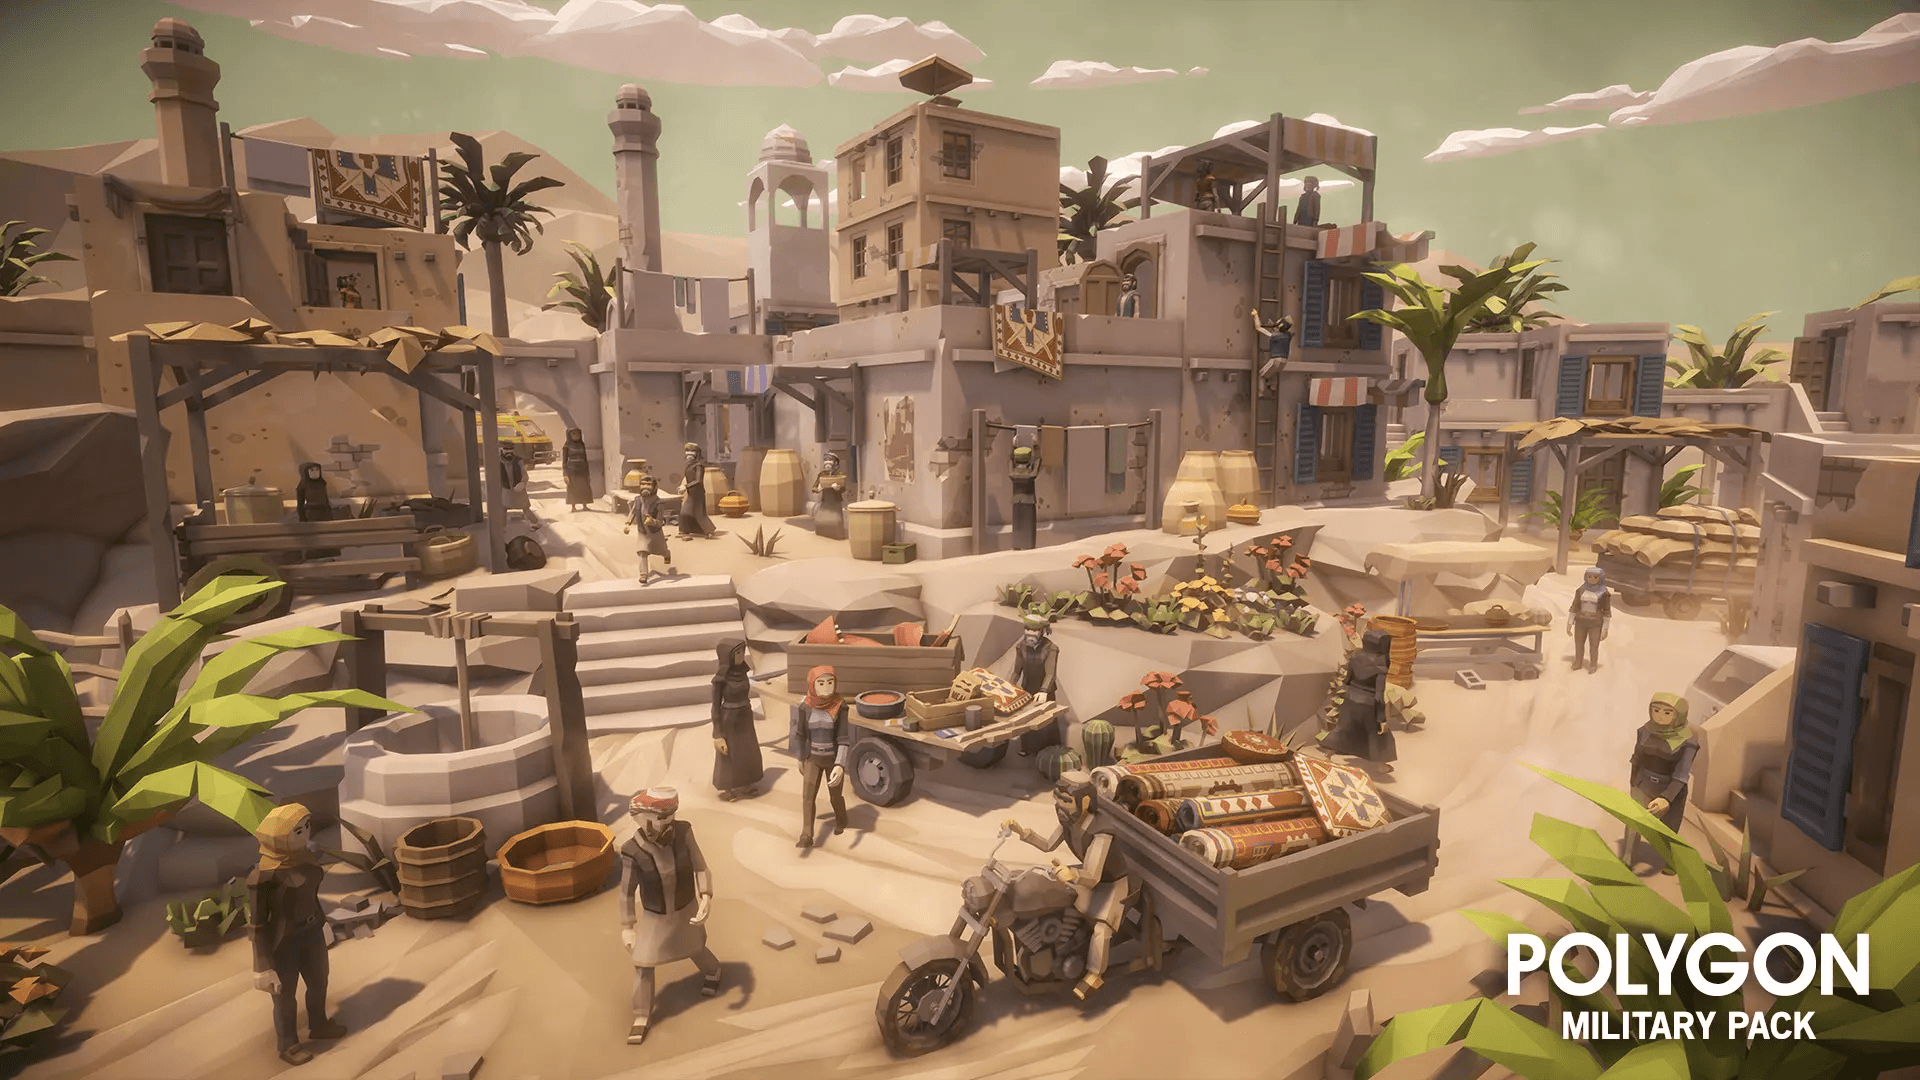 Low Poly Military Pack Desert Town